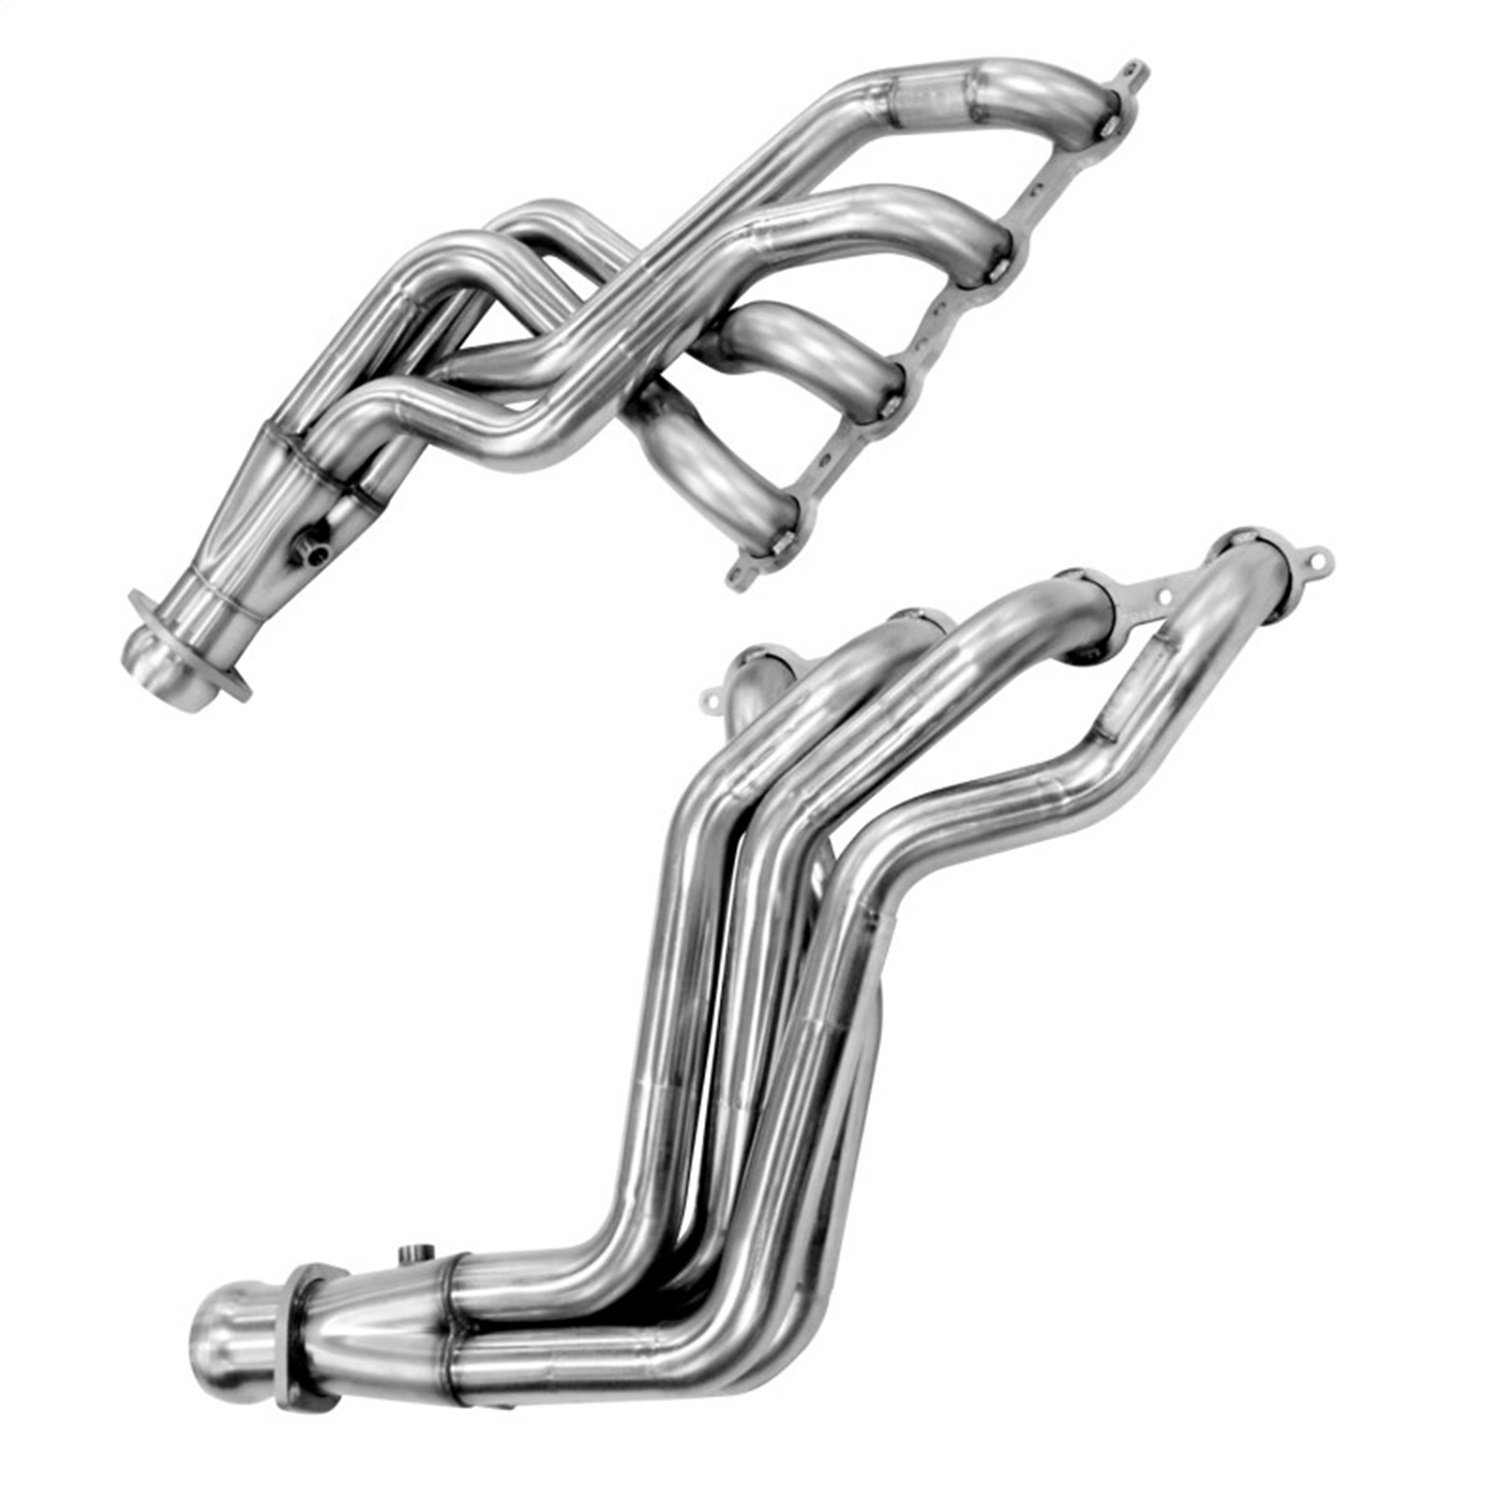 Kooks Custom Headers 24102400 Stainless Steel Headers Fits 04-06 GTO